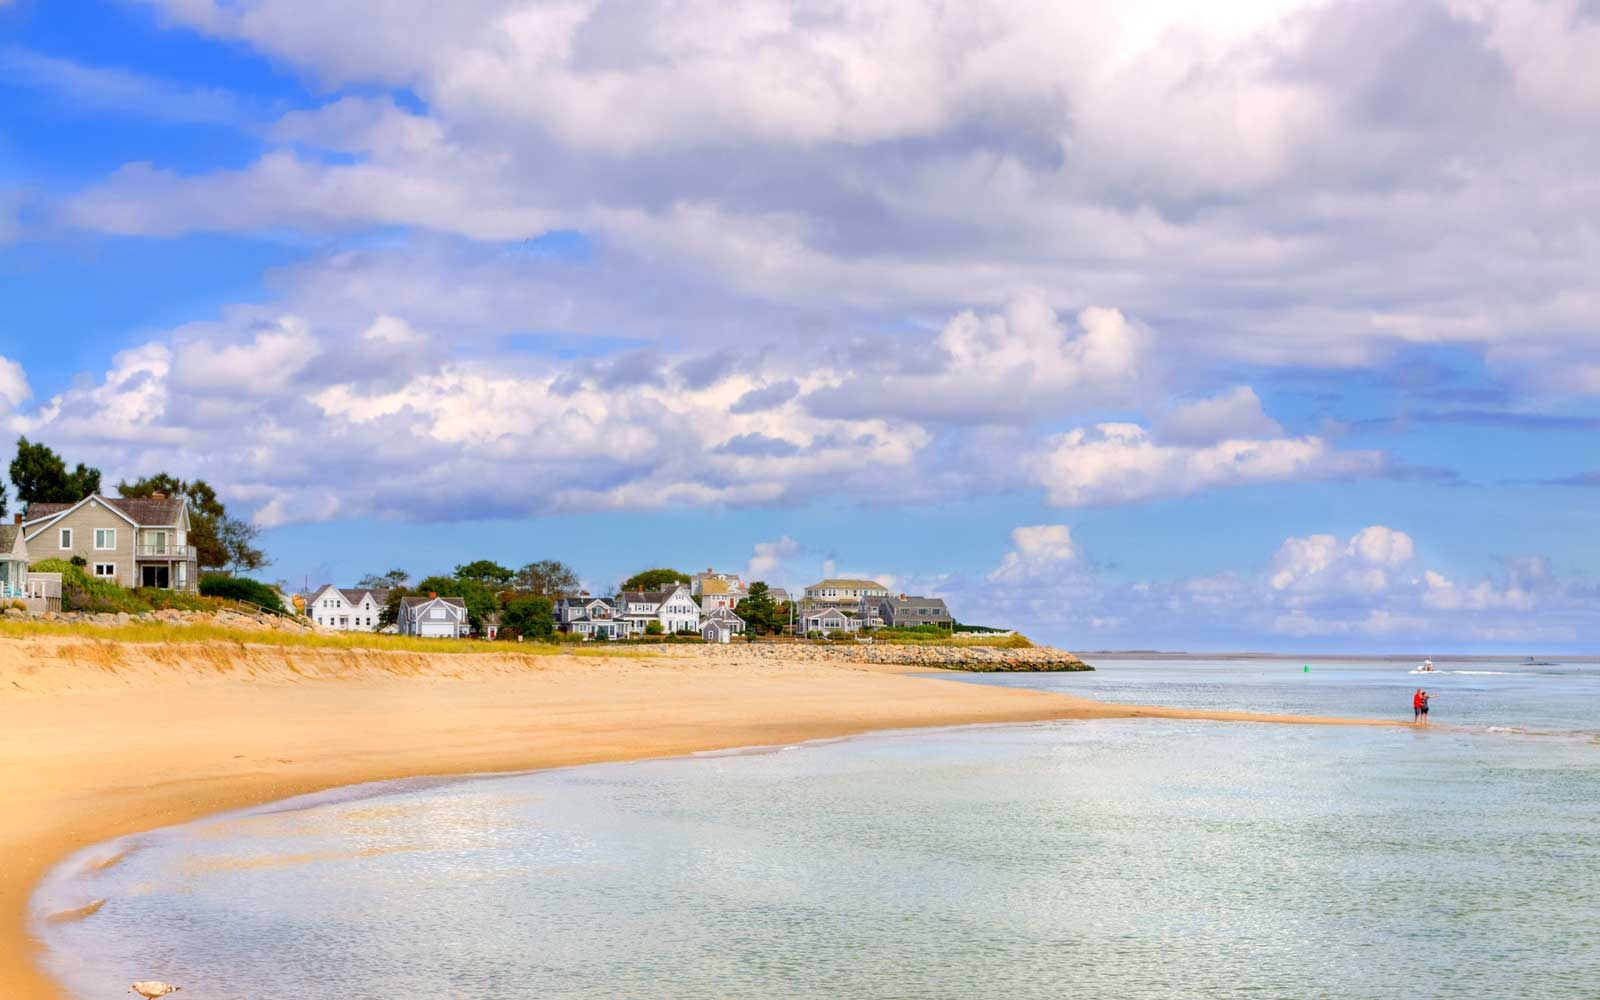 The Best Small Beach Towns for People Who Want to Escape the Crowds